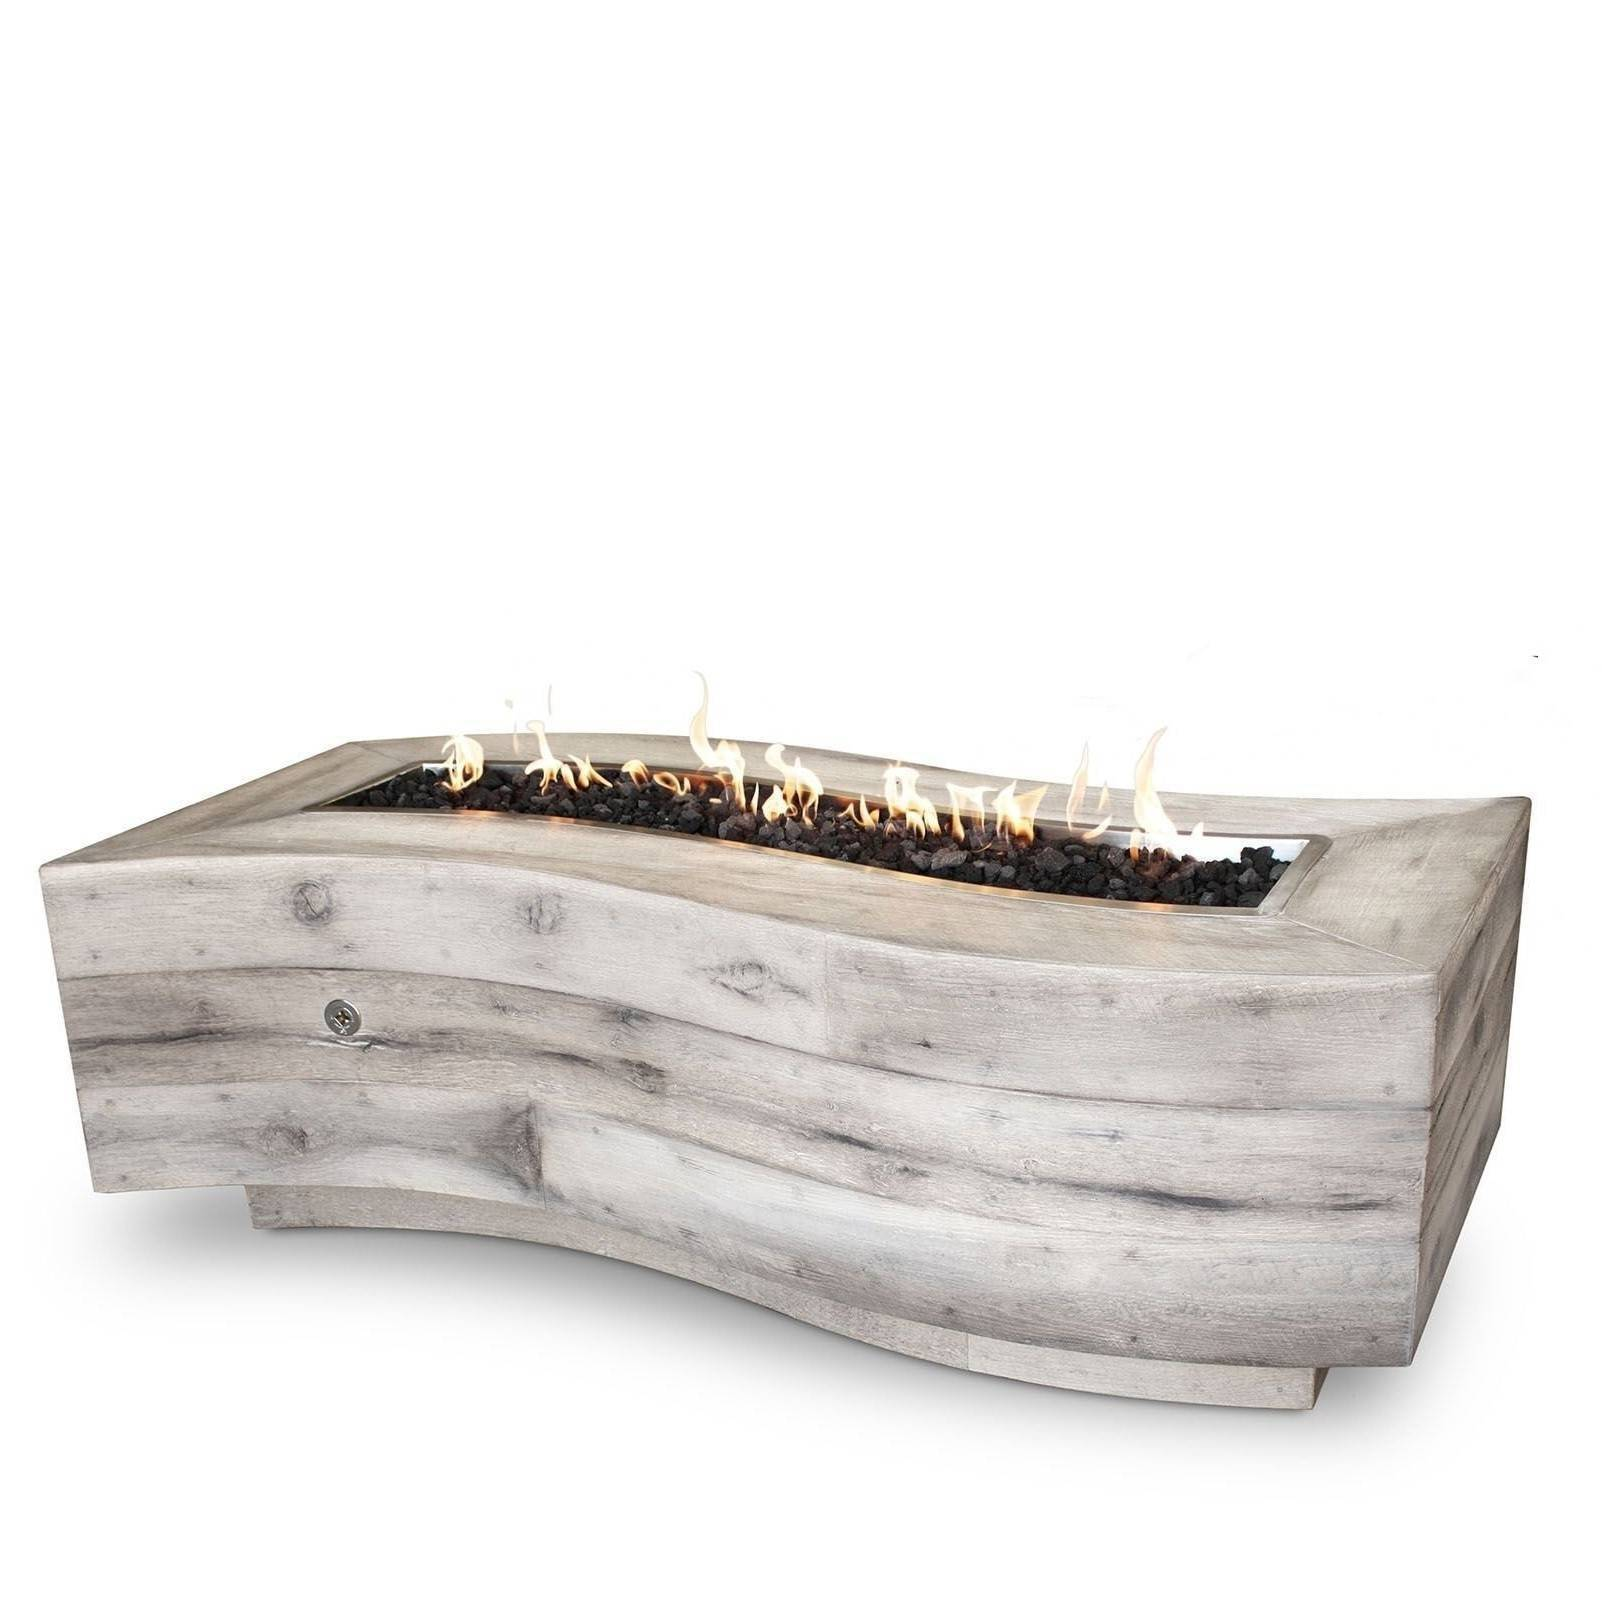 "72"" Big Sur Wood Grain Concrete Fire Table - Ivory"